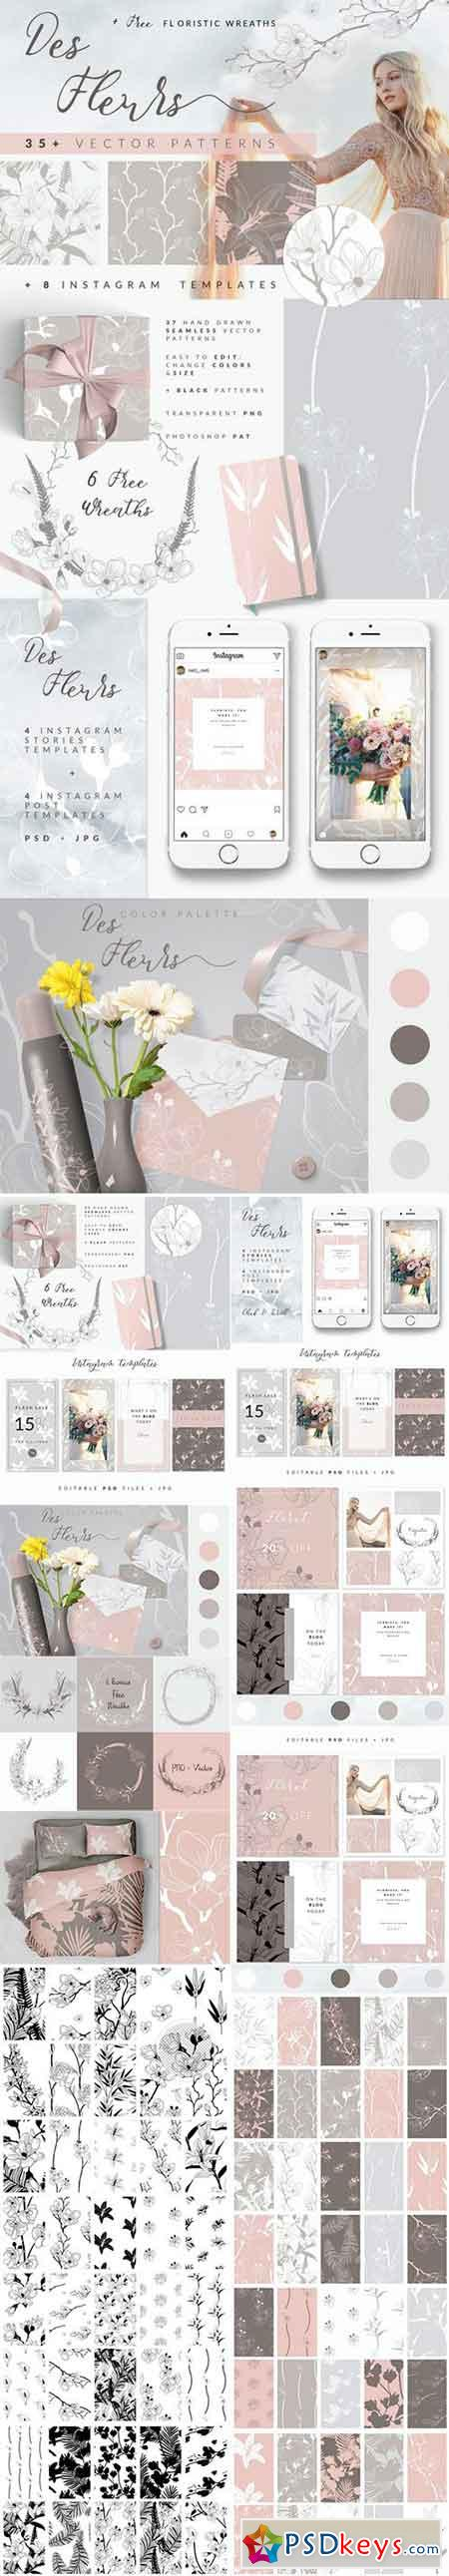 35+ Patterns & 8 Instagram Templates 2344548